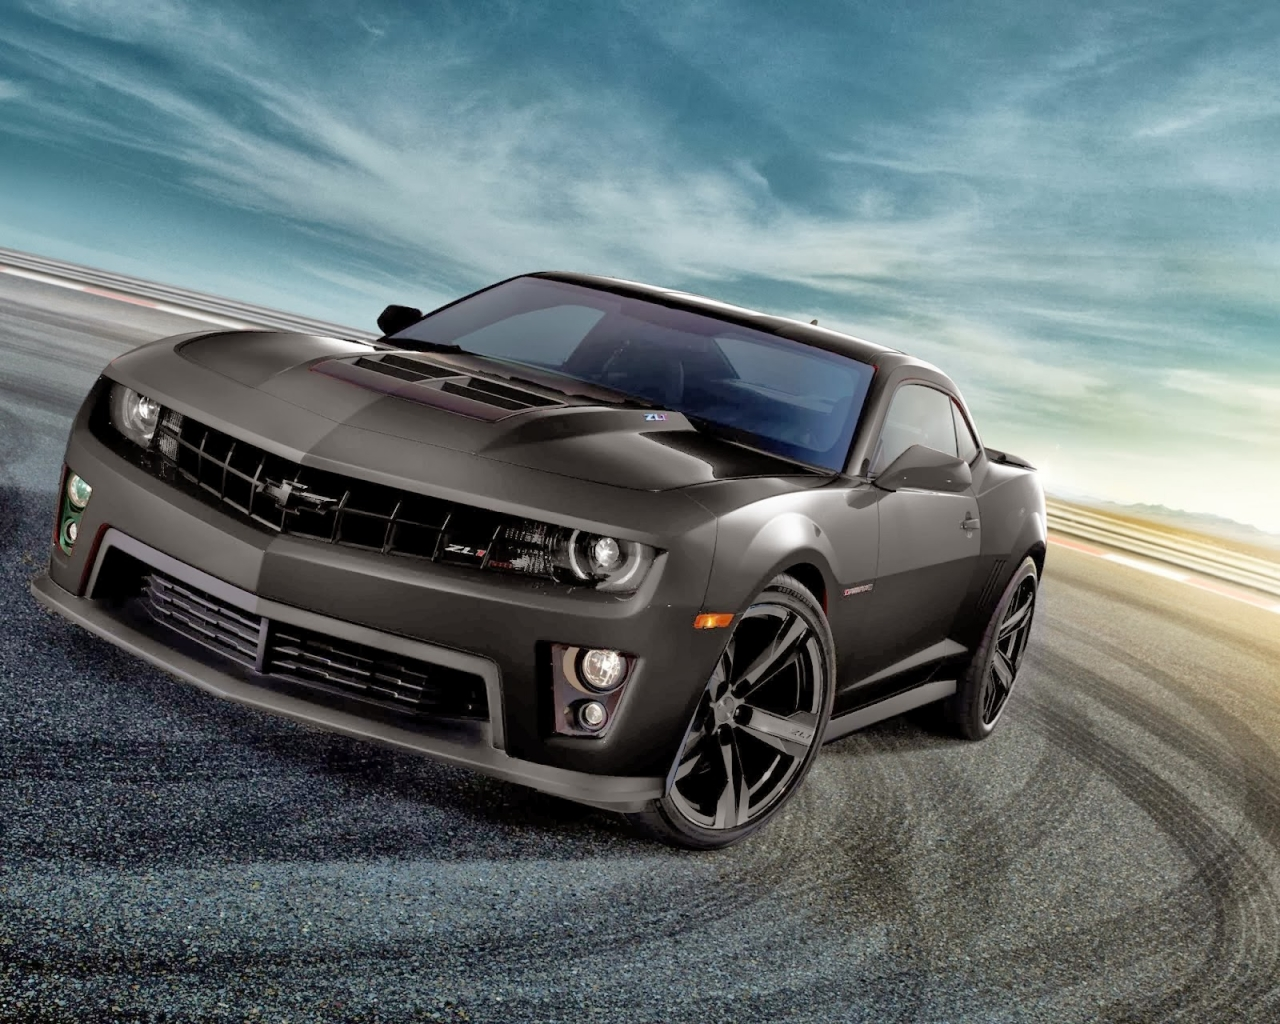 Camaro Zl1 Wallpapers Hd Wallpapersafari